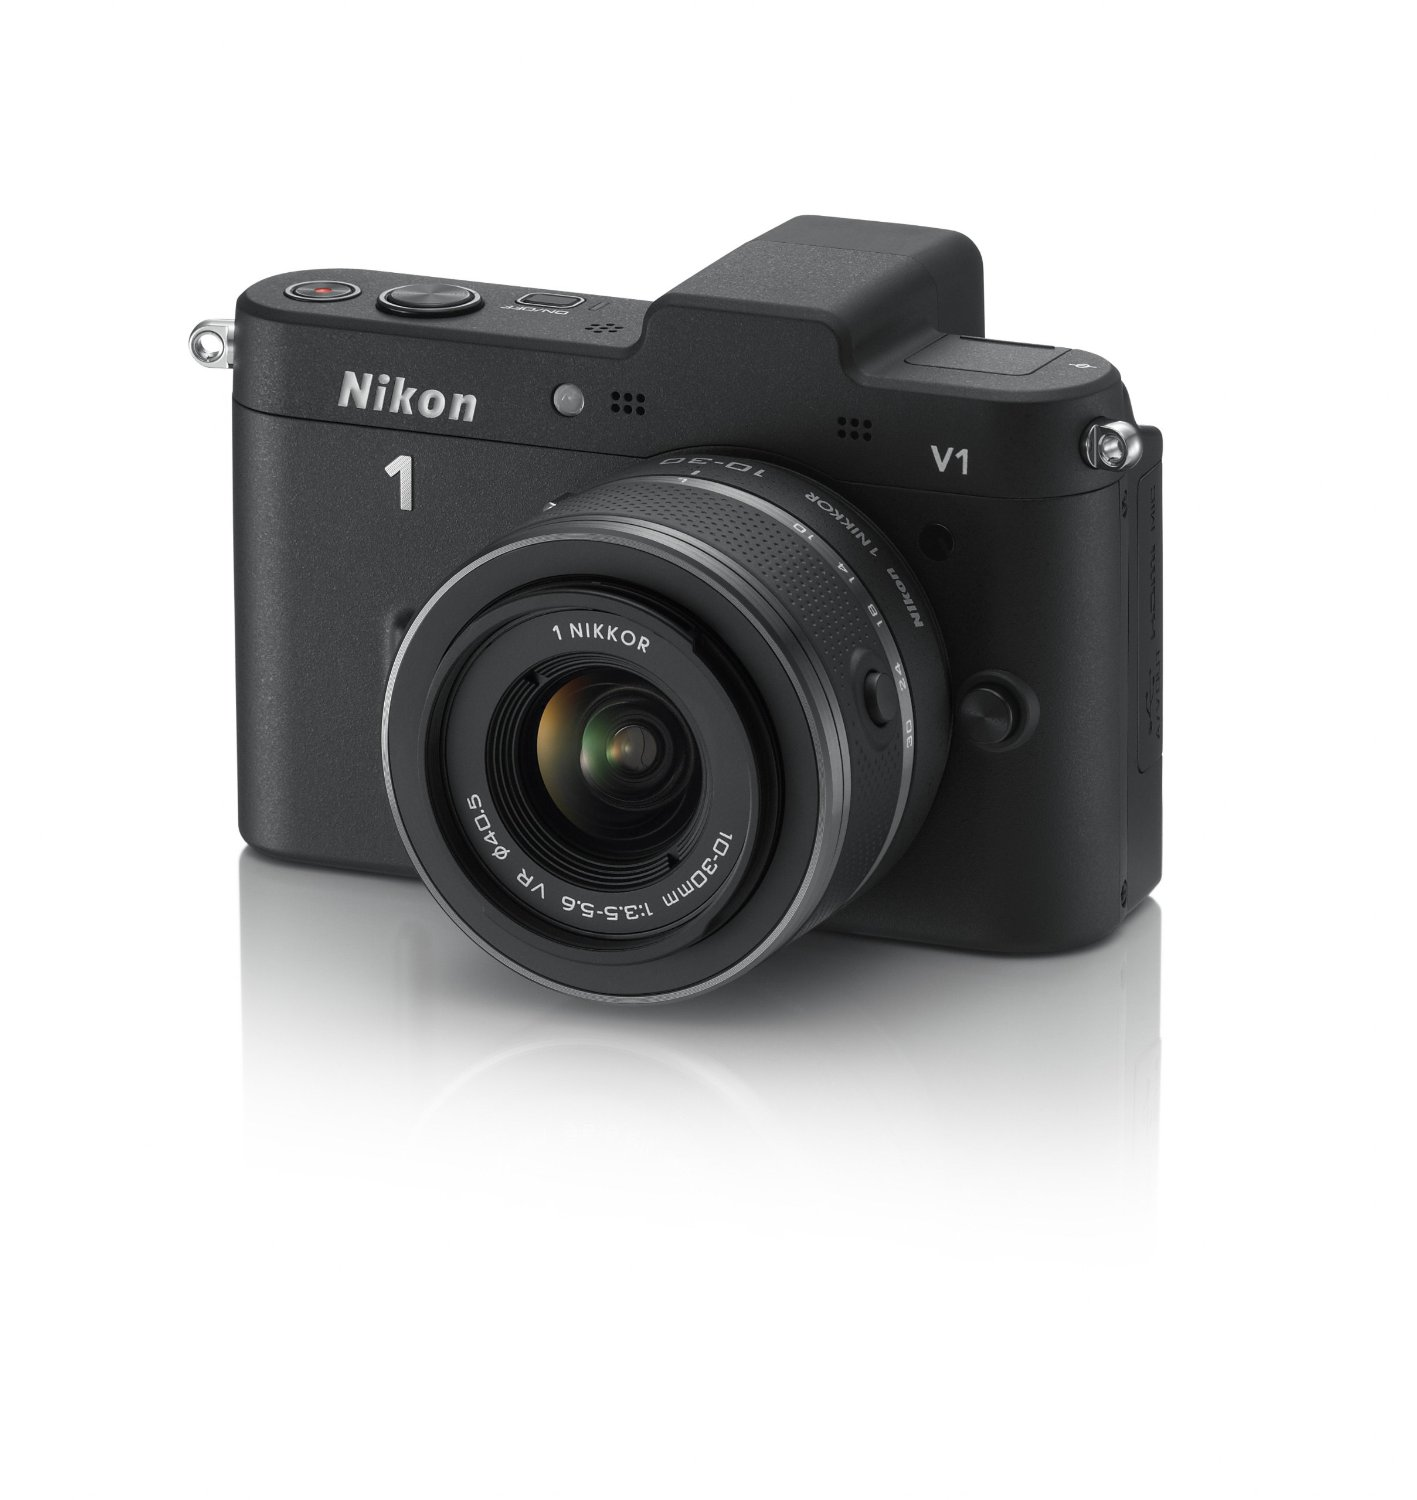 Nikon just released a new firmware update for Nikon 1 V1. This